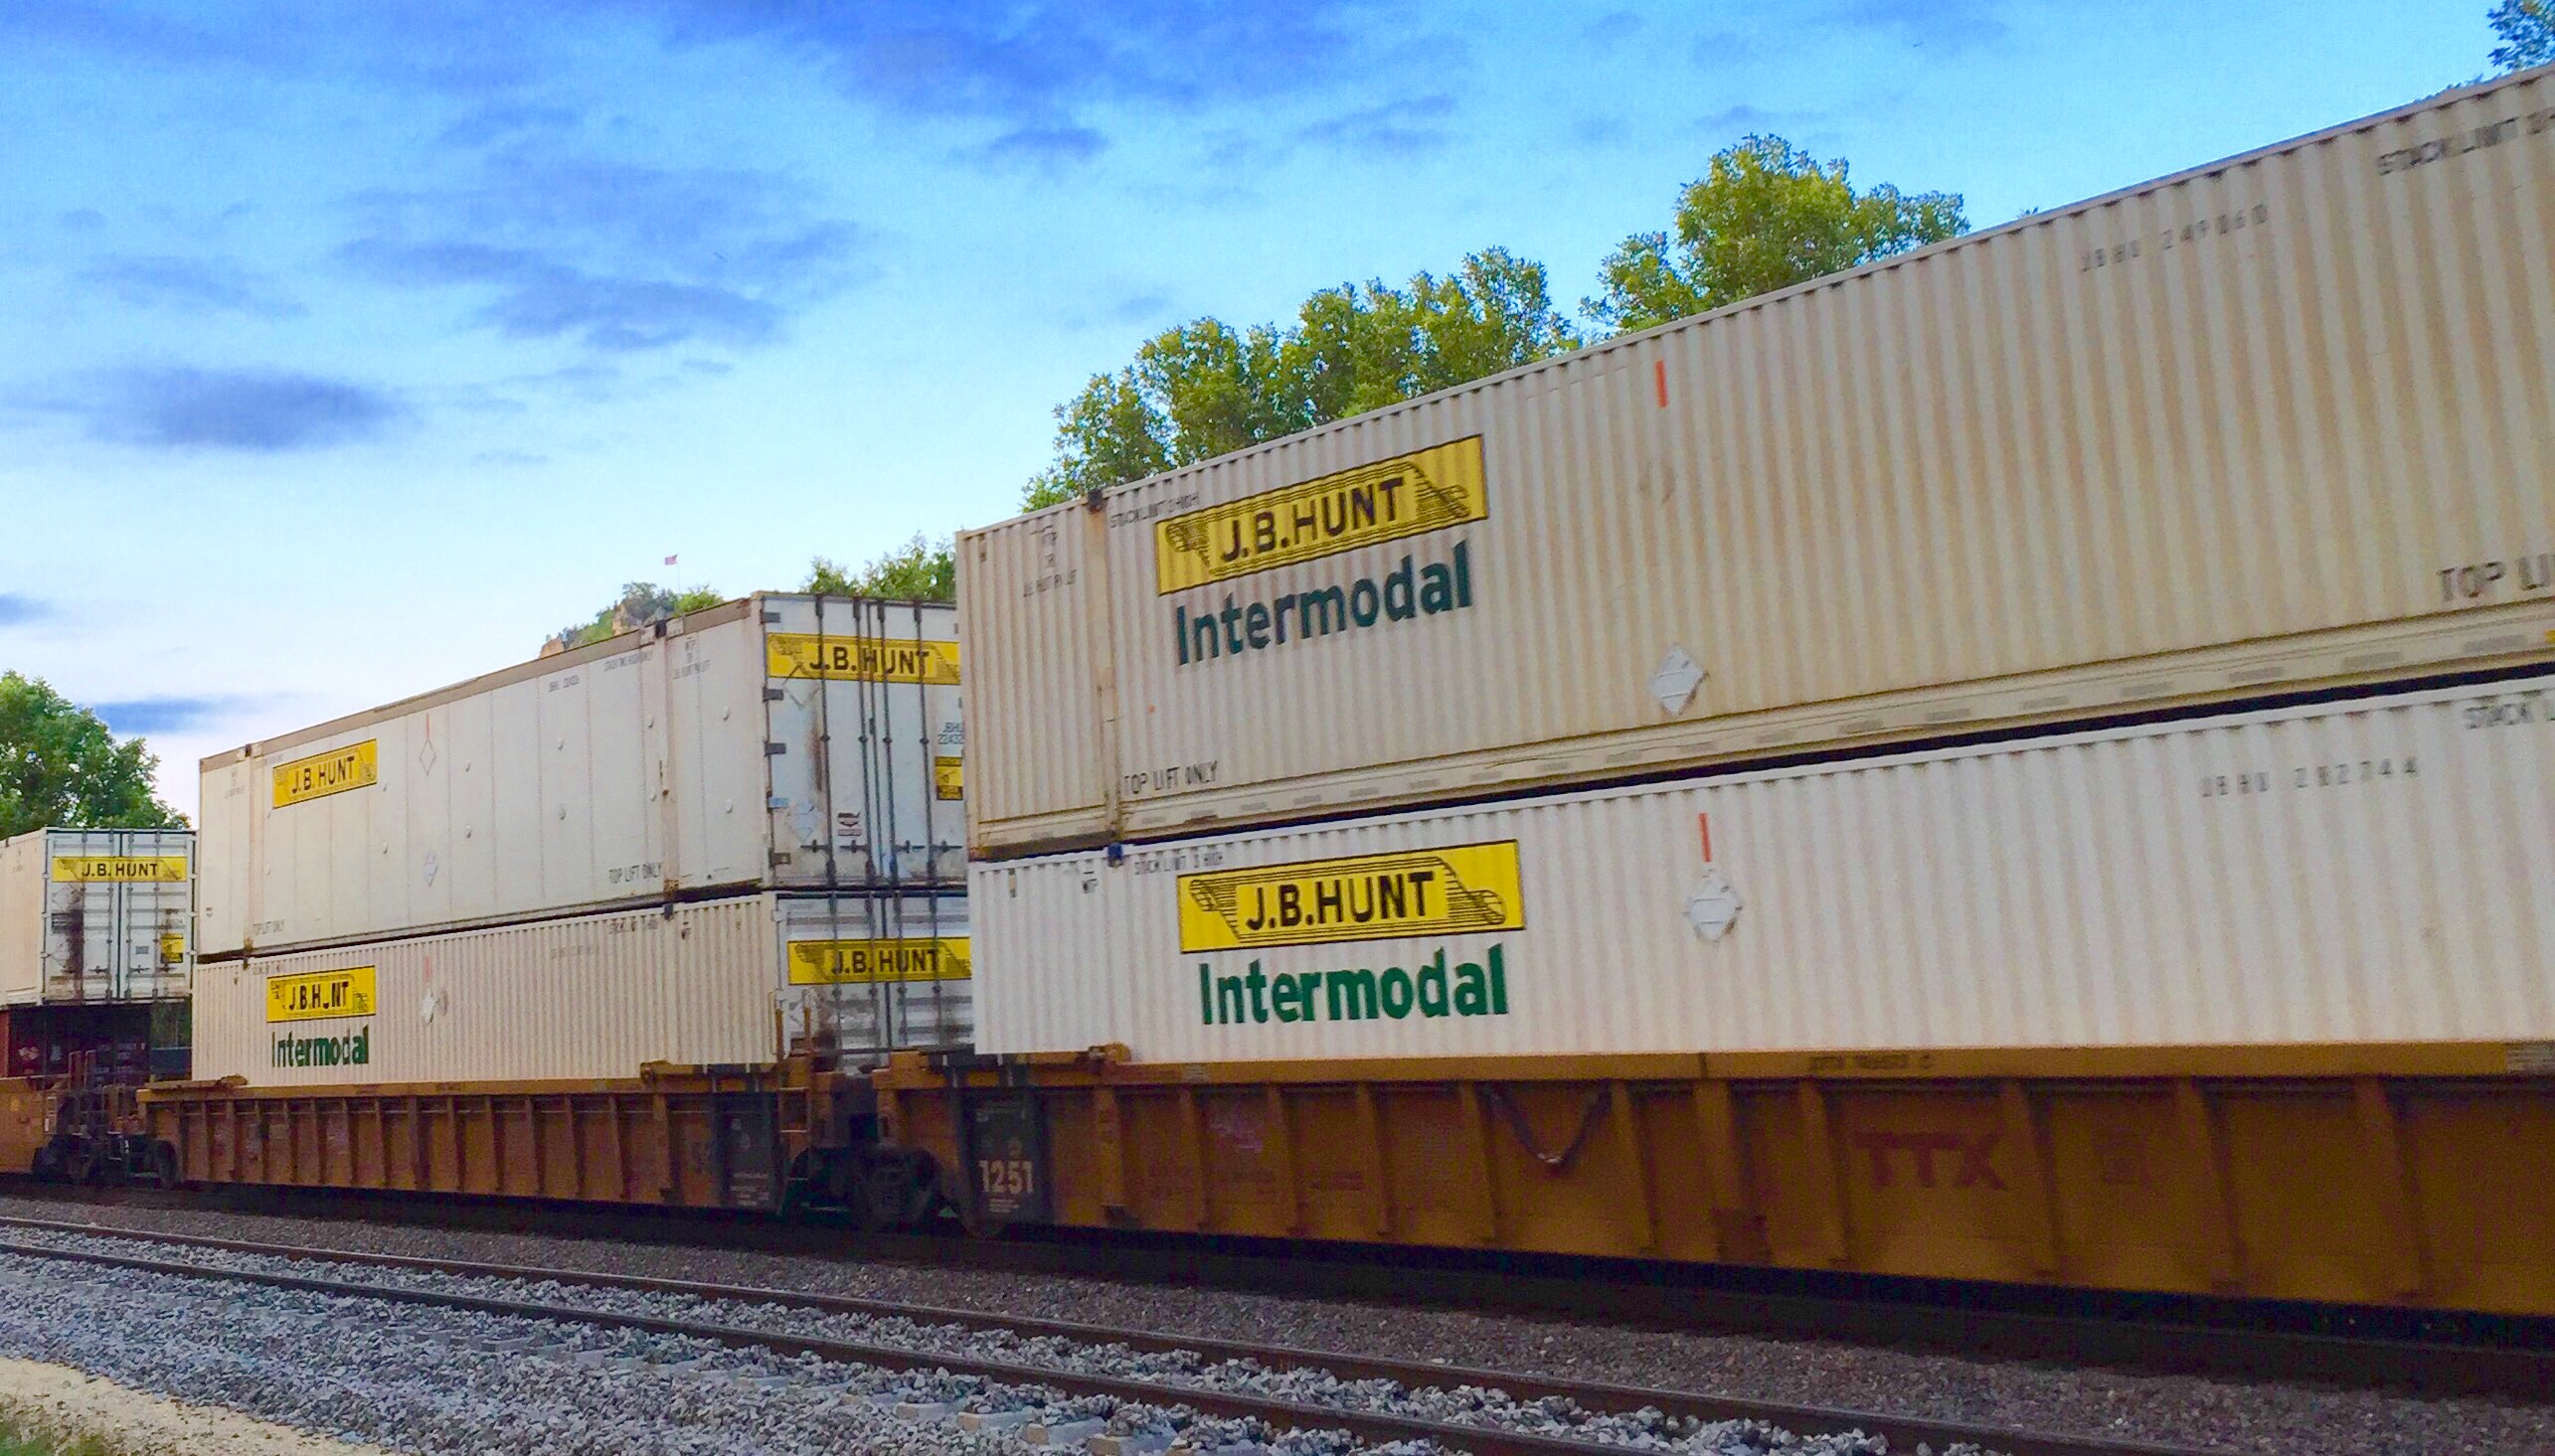 File:J.B. Hunt intermodal.jpeg - Wikimedia Commons